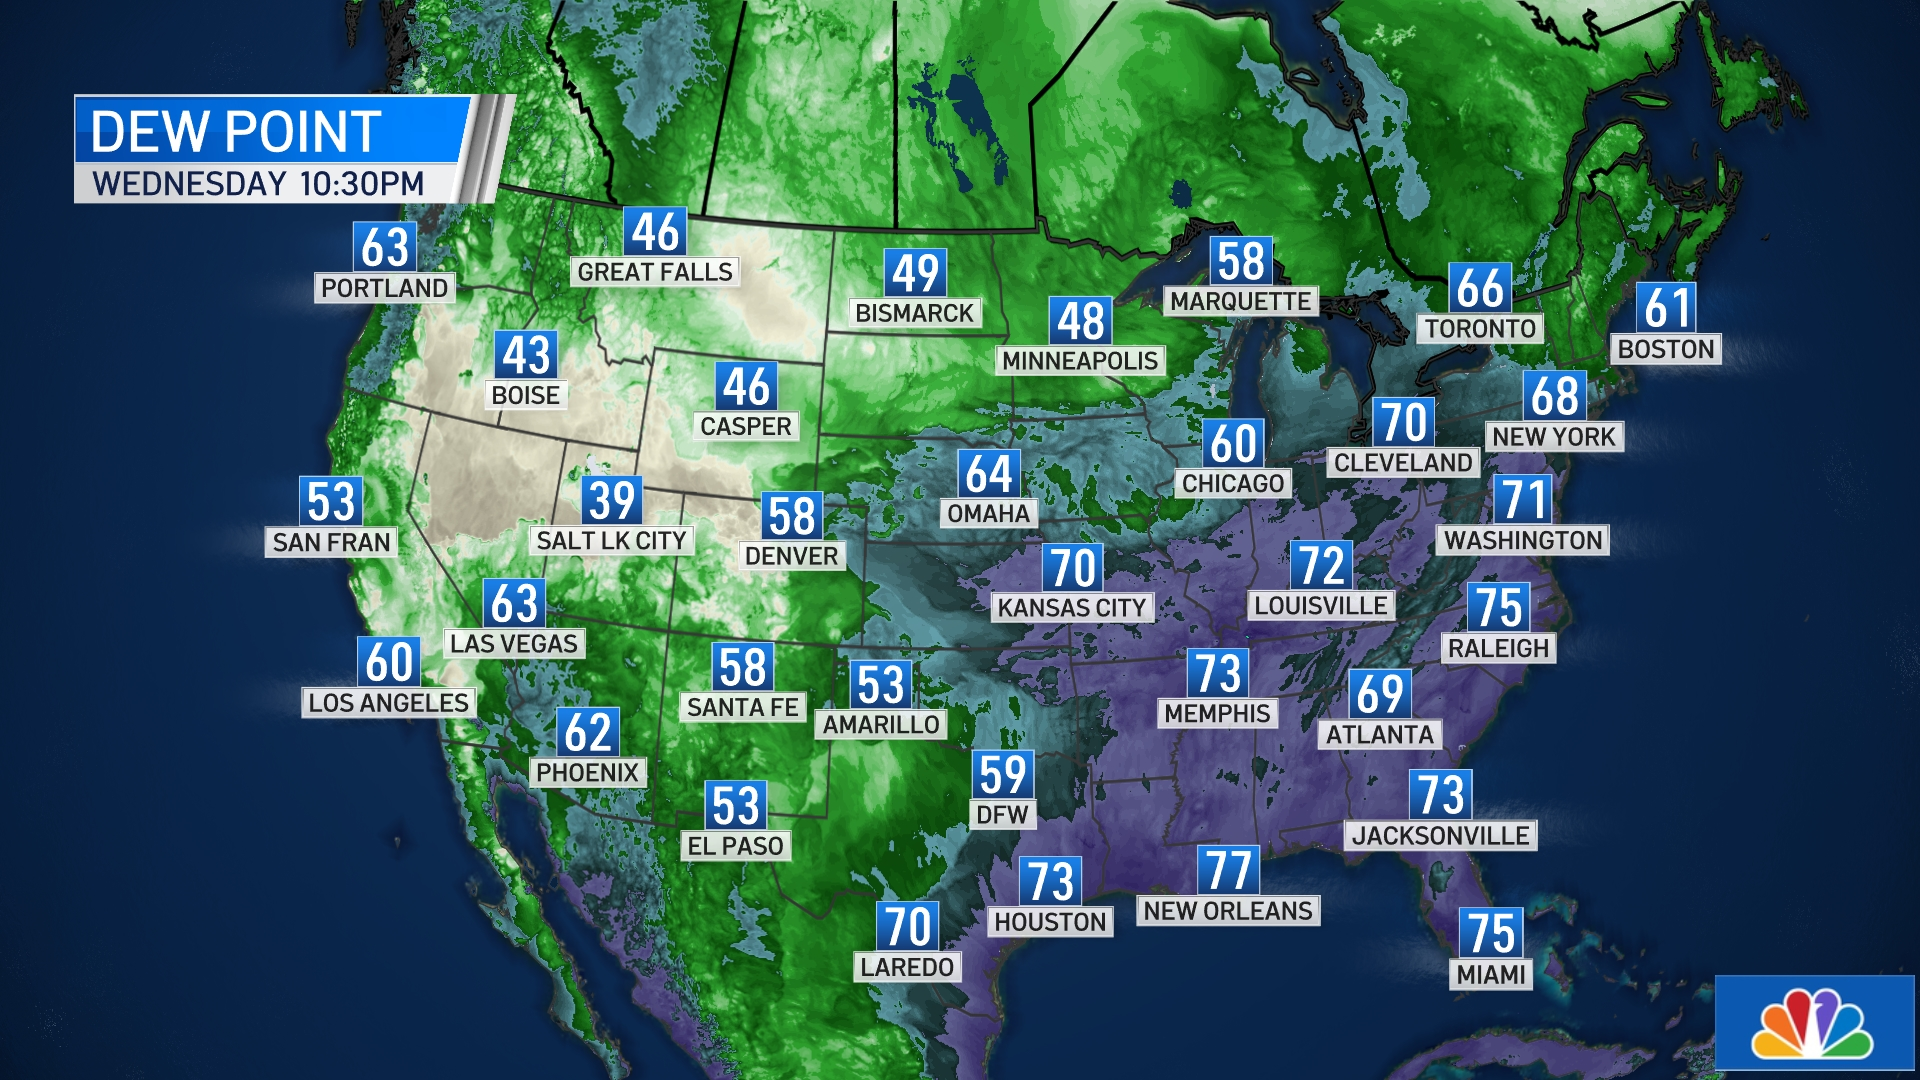 NATIONAL DEWPOINT